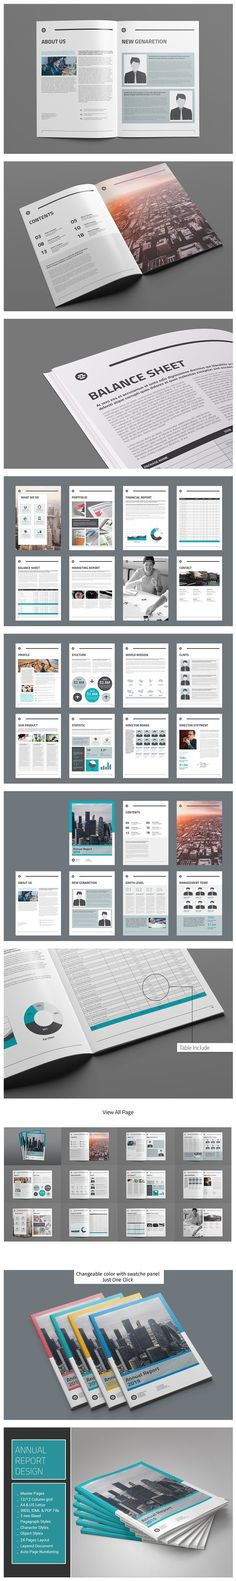 Business Proposal IndesignMS Word Brochure Templates